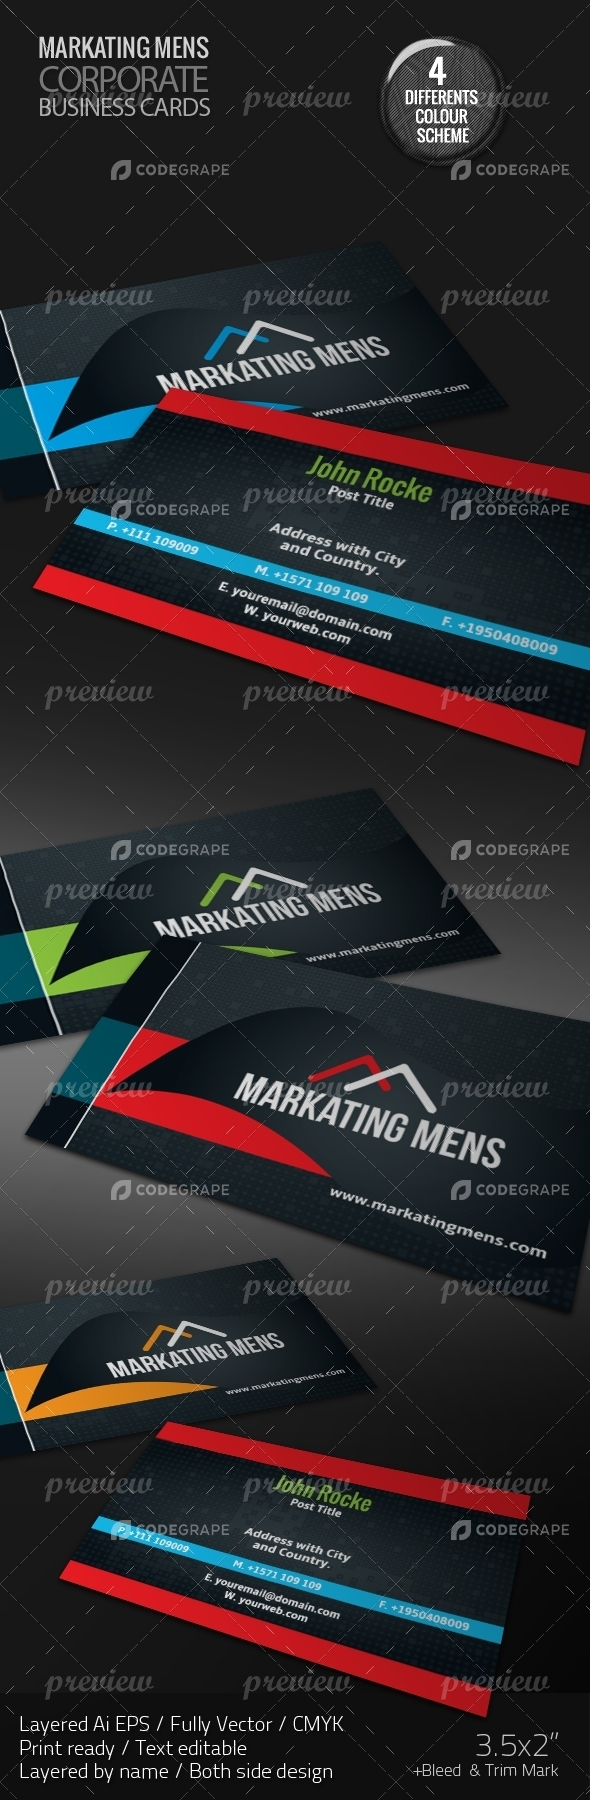 MARKATING MENS Corporate Business Cards